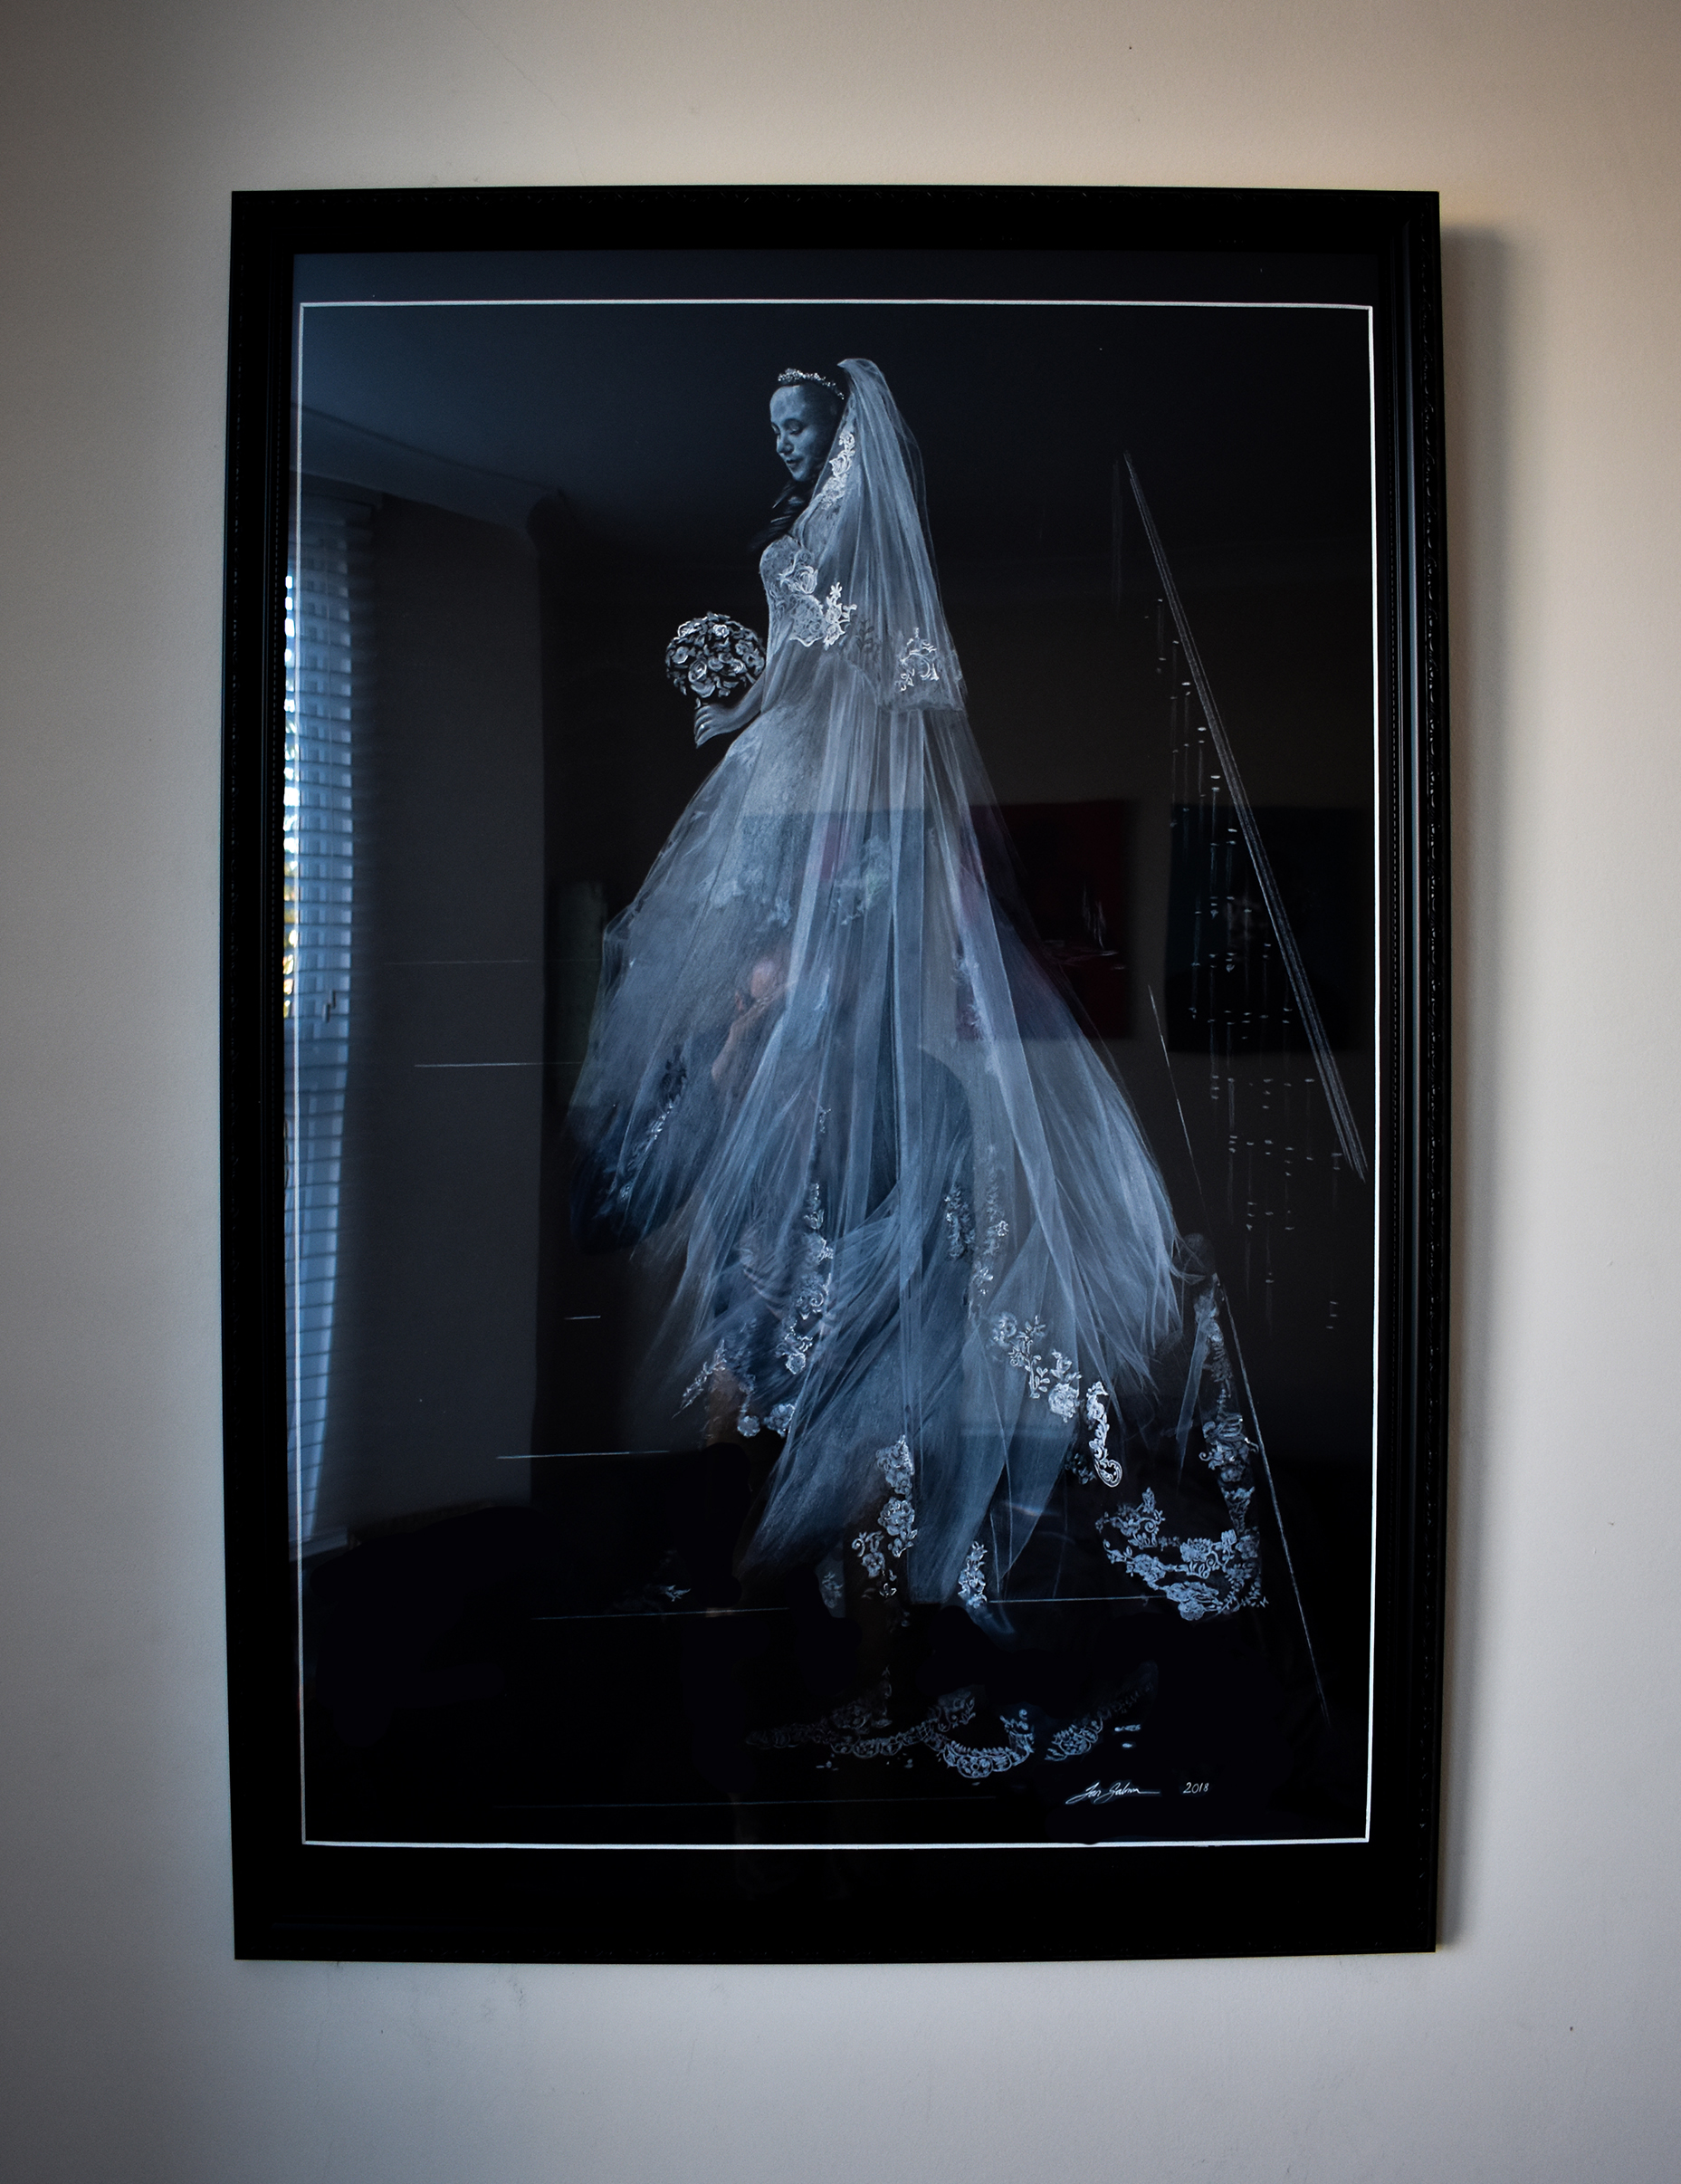 Stuart - Beautiful Bride - 03/02/19Masterpiece!. Unbelievable talent. The detail, feel and execution of the finished work is second to none. It brings tears of joy to our eyes every time we look at it, and Ian has managed to capture the very essence our daughter's great day. Thank you Ian.